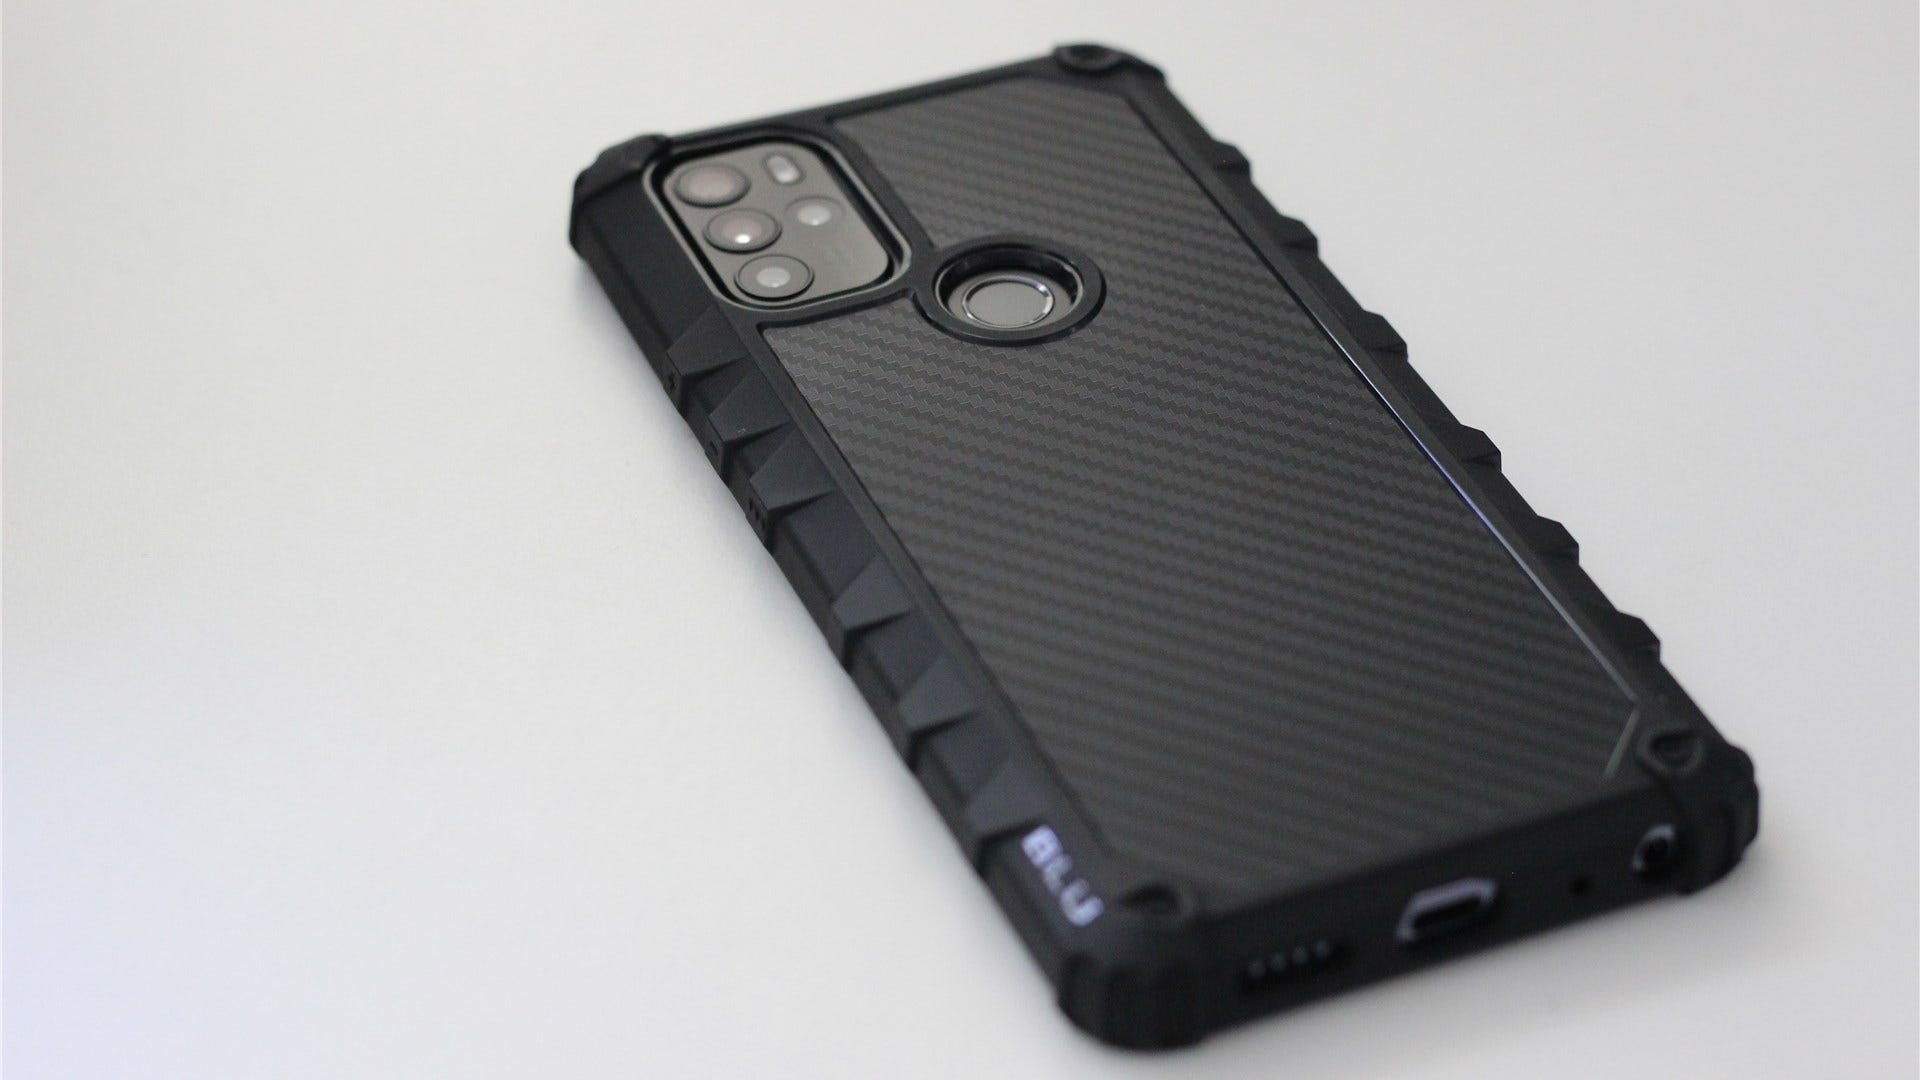 The G91 Pro in the included case